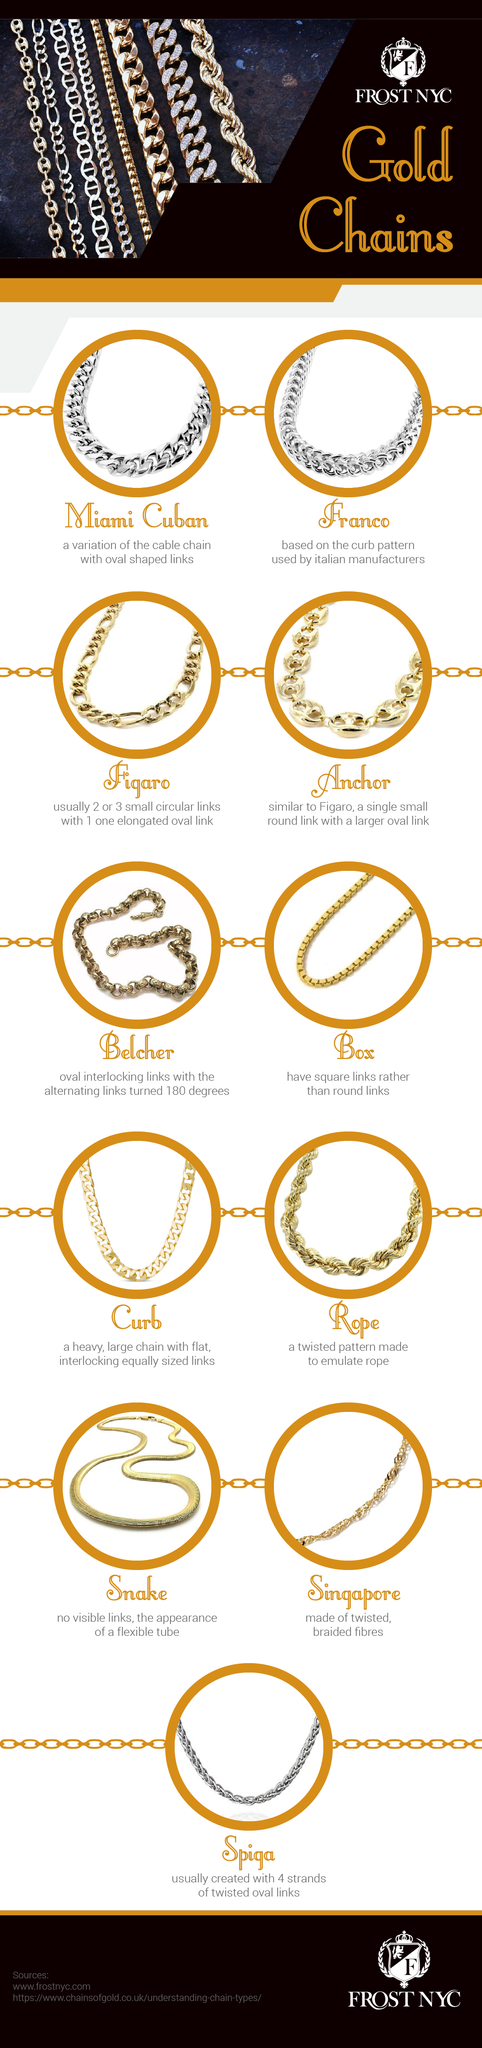 Gold Chain Info graphic